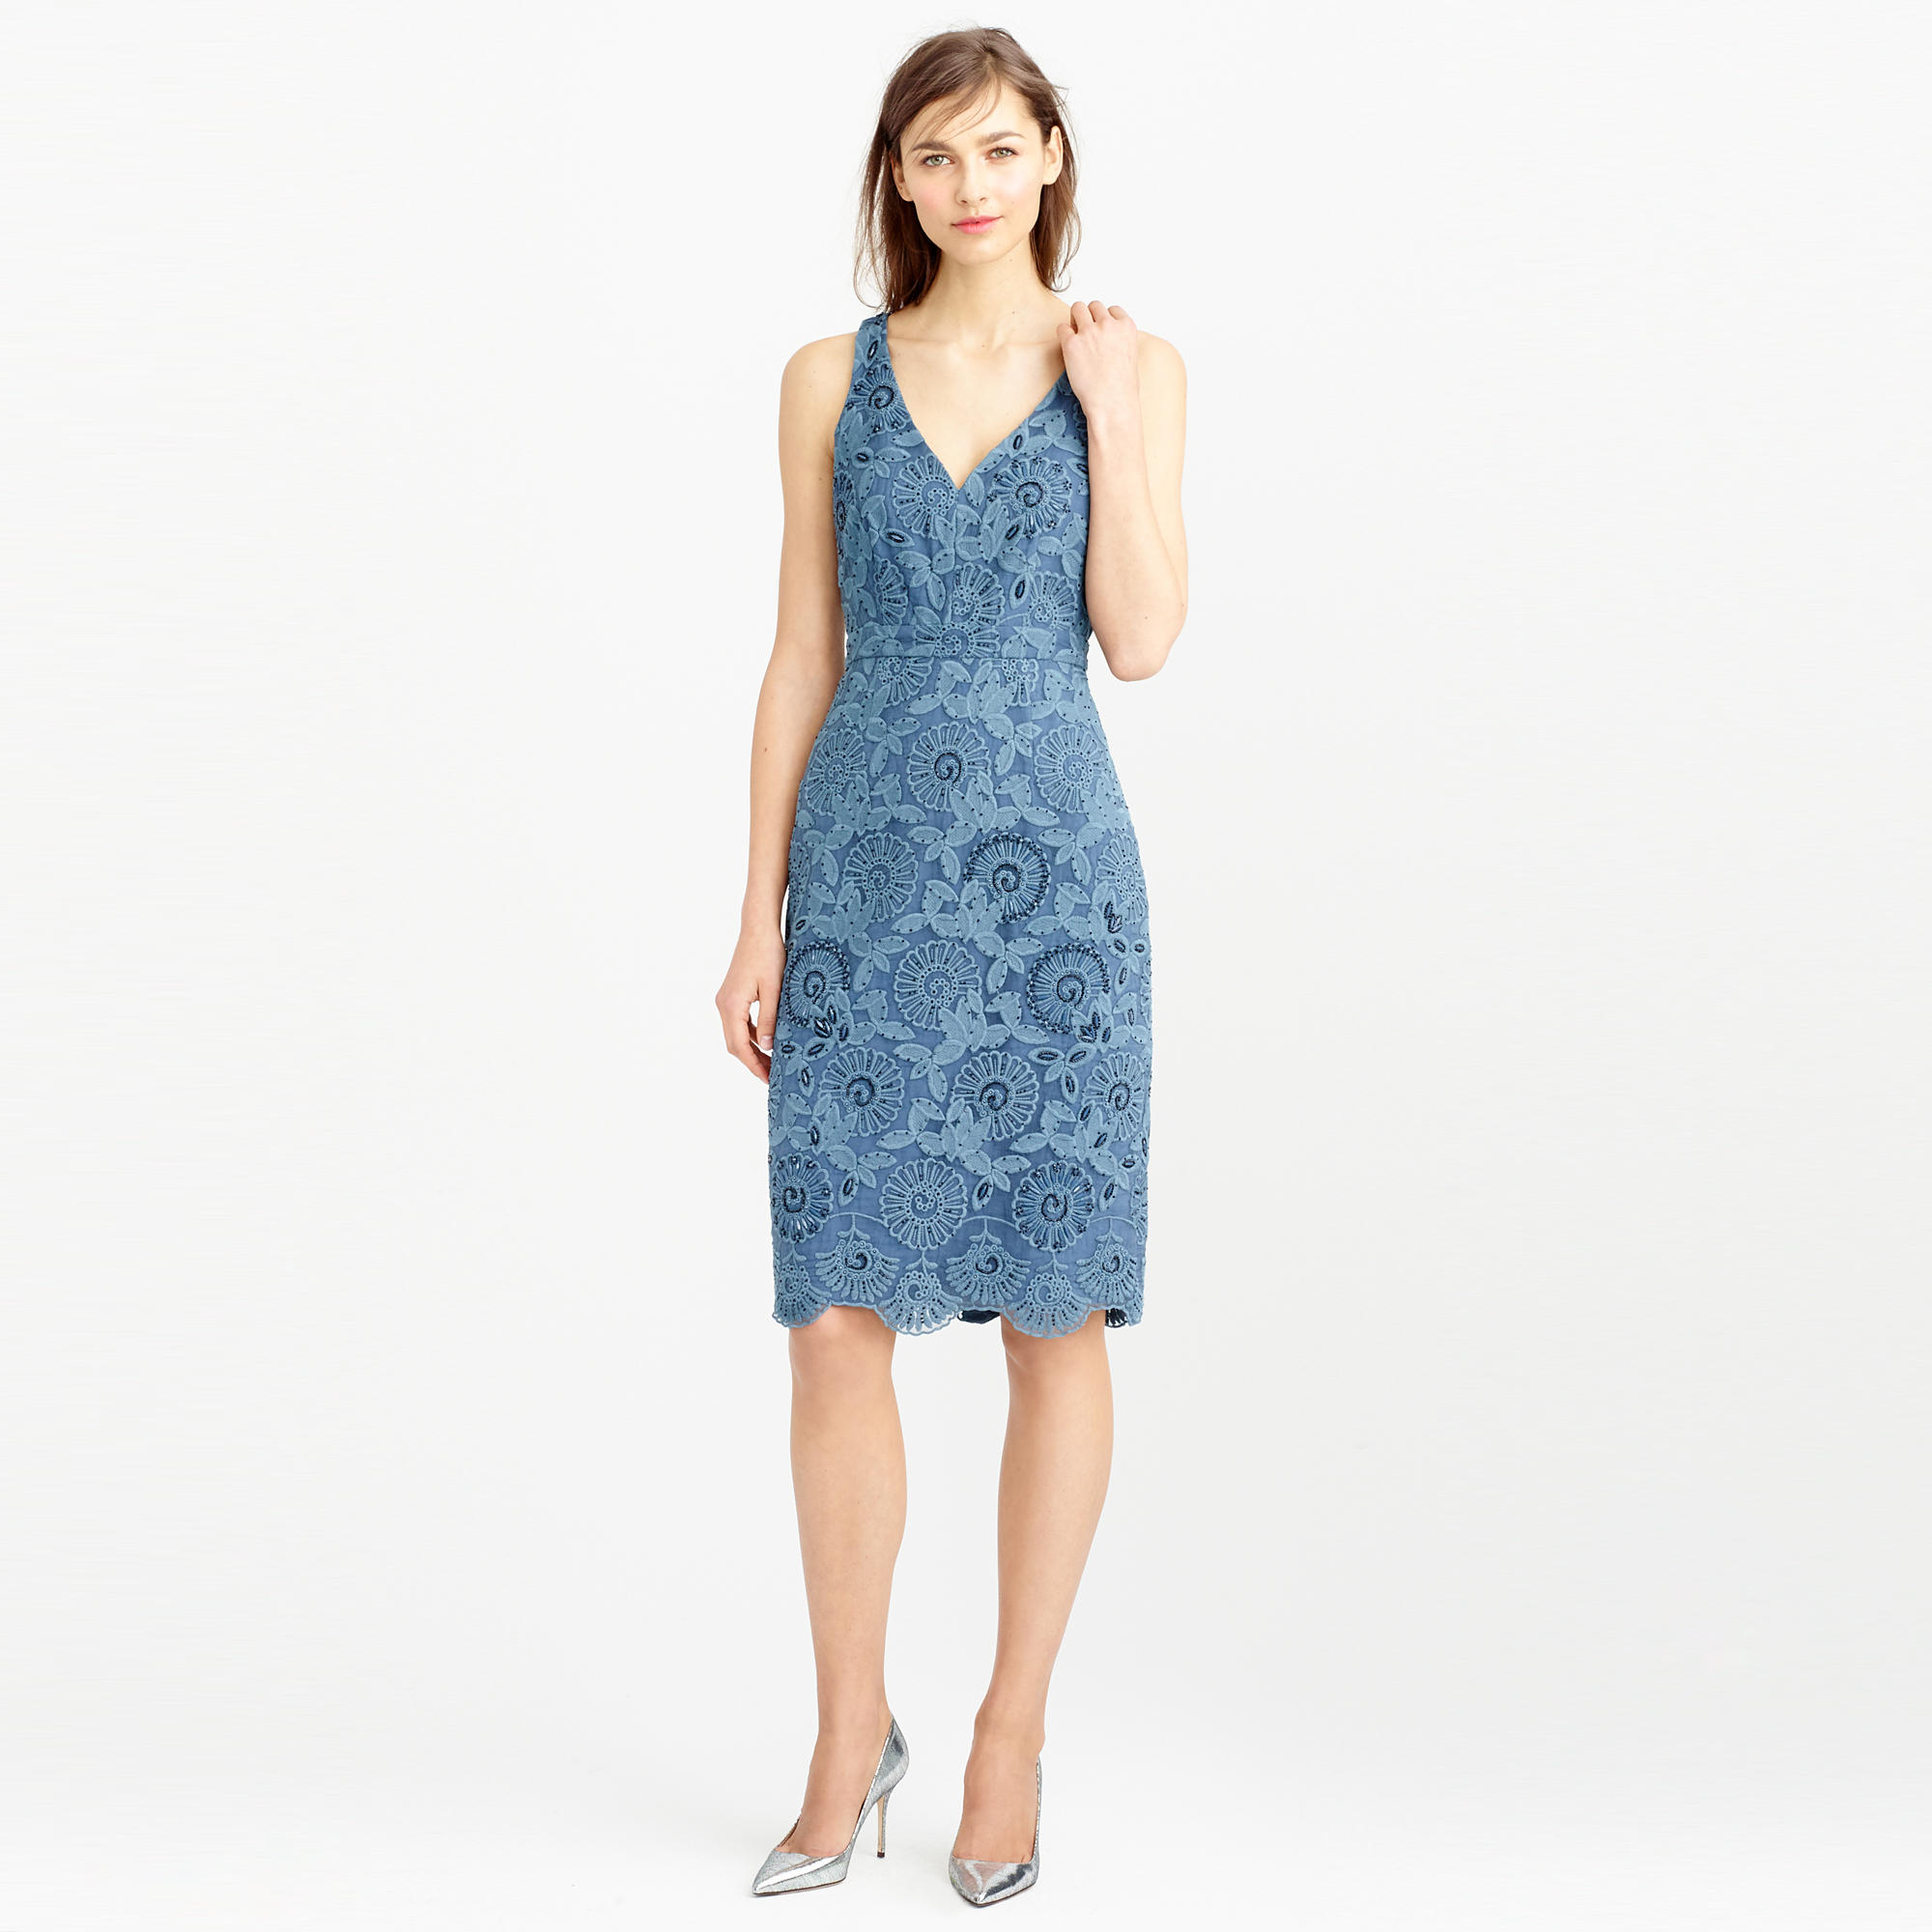 Lyst - J.Crew Collection Beaded Floral Lace Dress in Blue